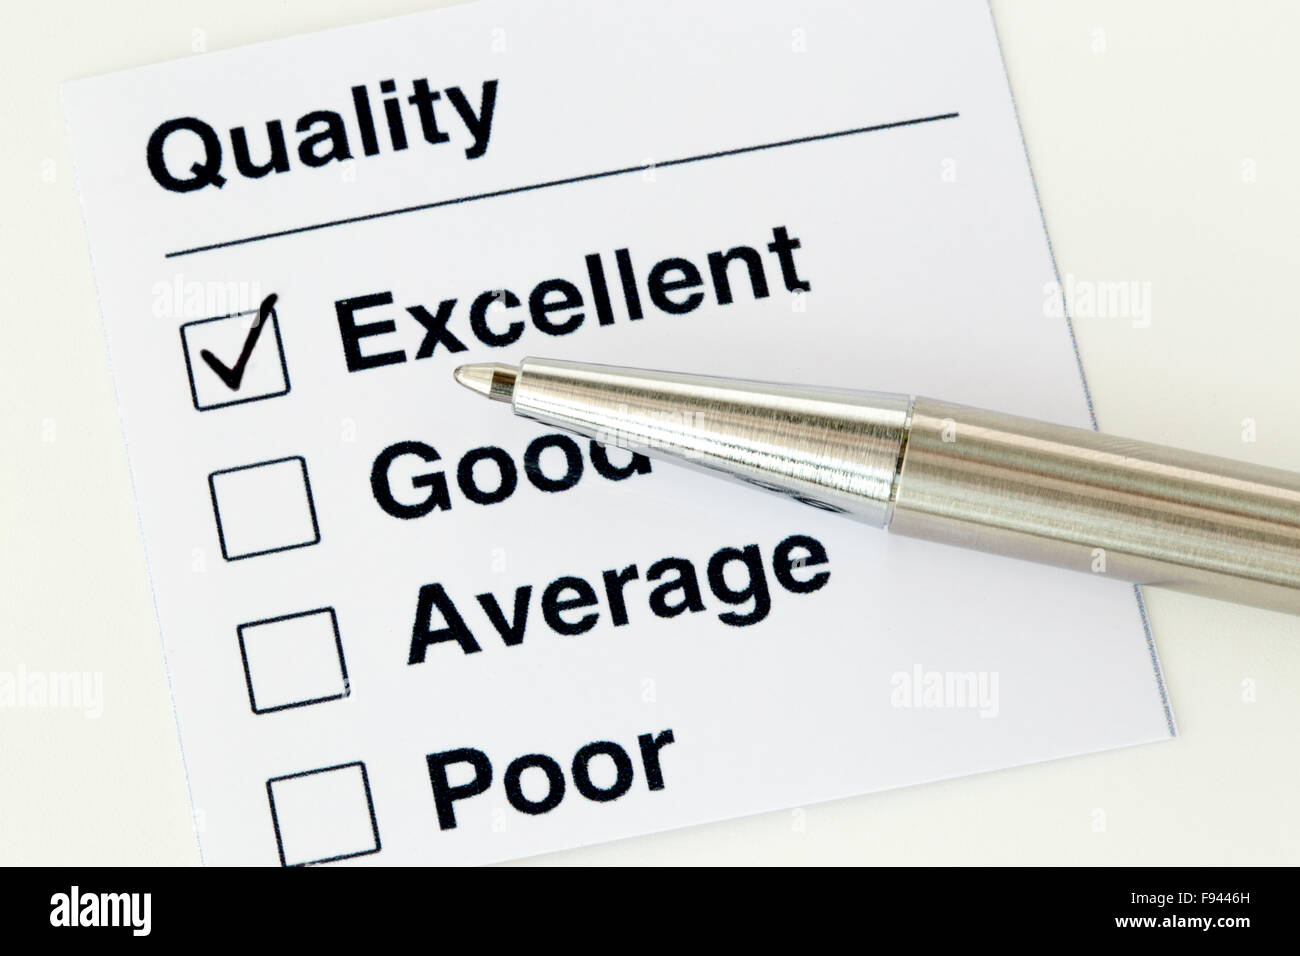 Ball pen setting a tick mark at excellent on quality checklist illustration - Stock Image